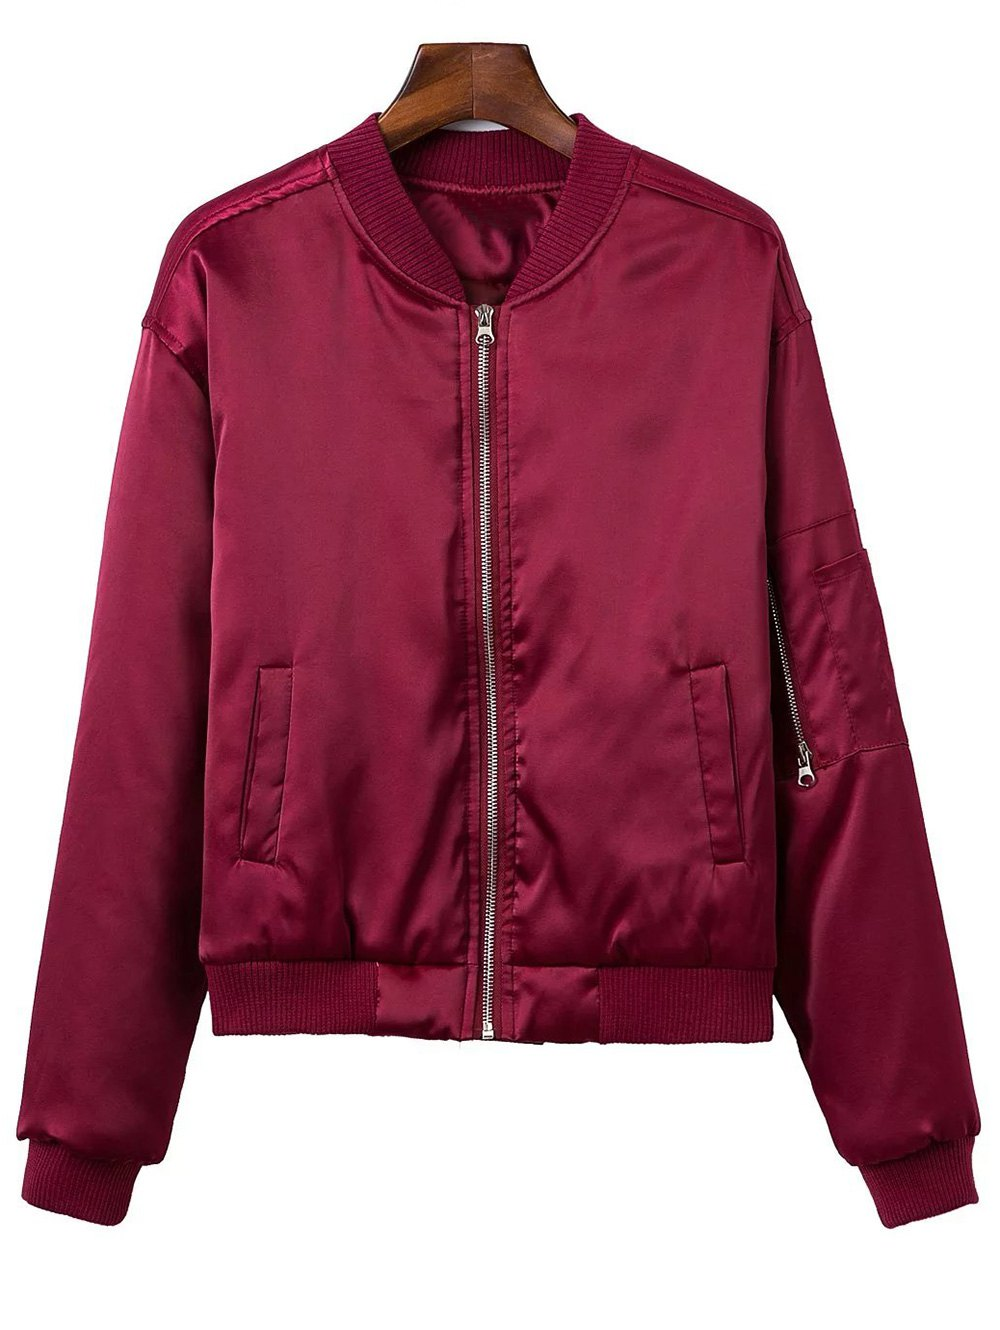 Zipped Pure Color Jacket